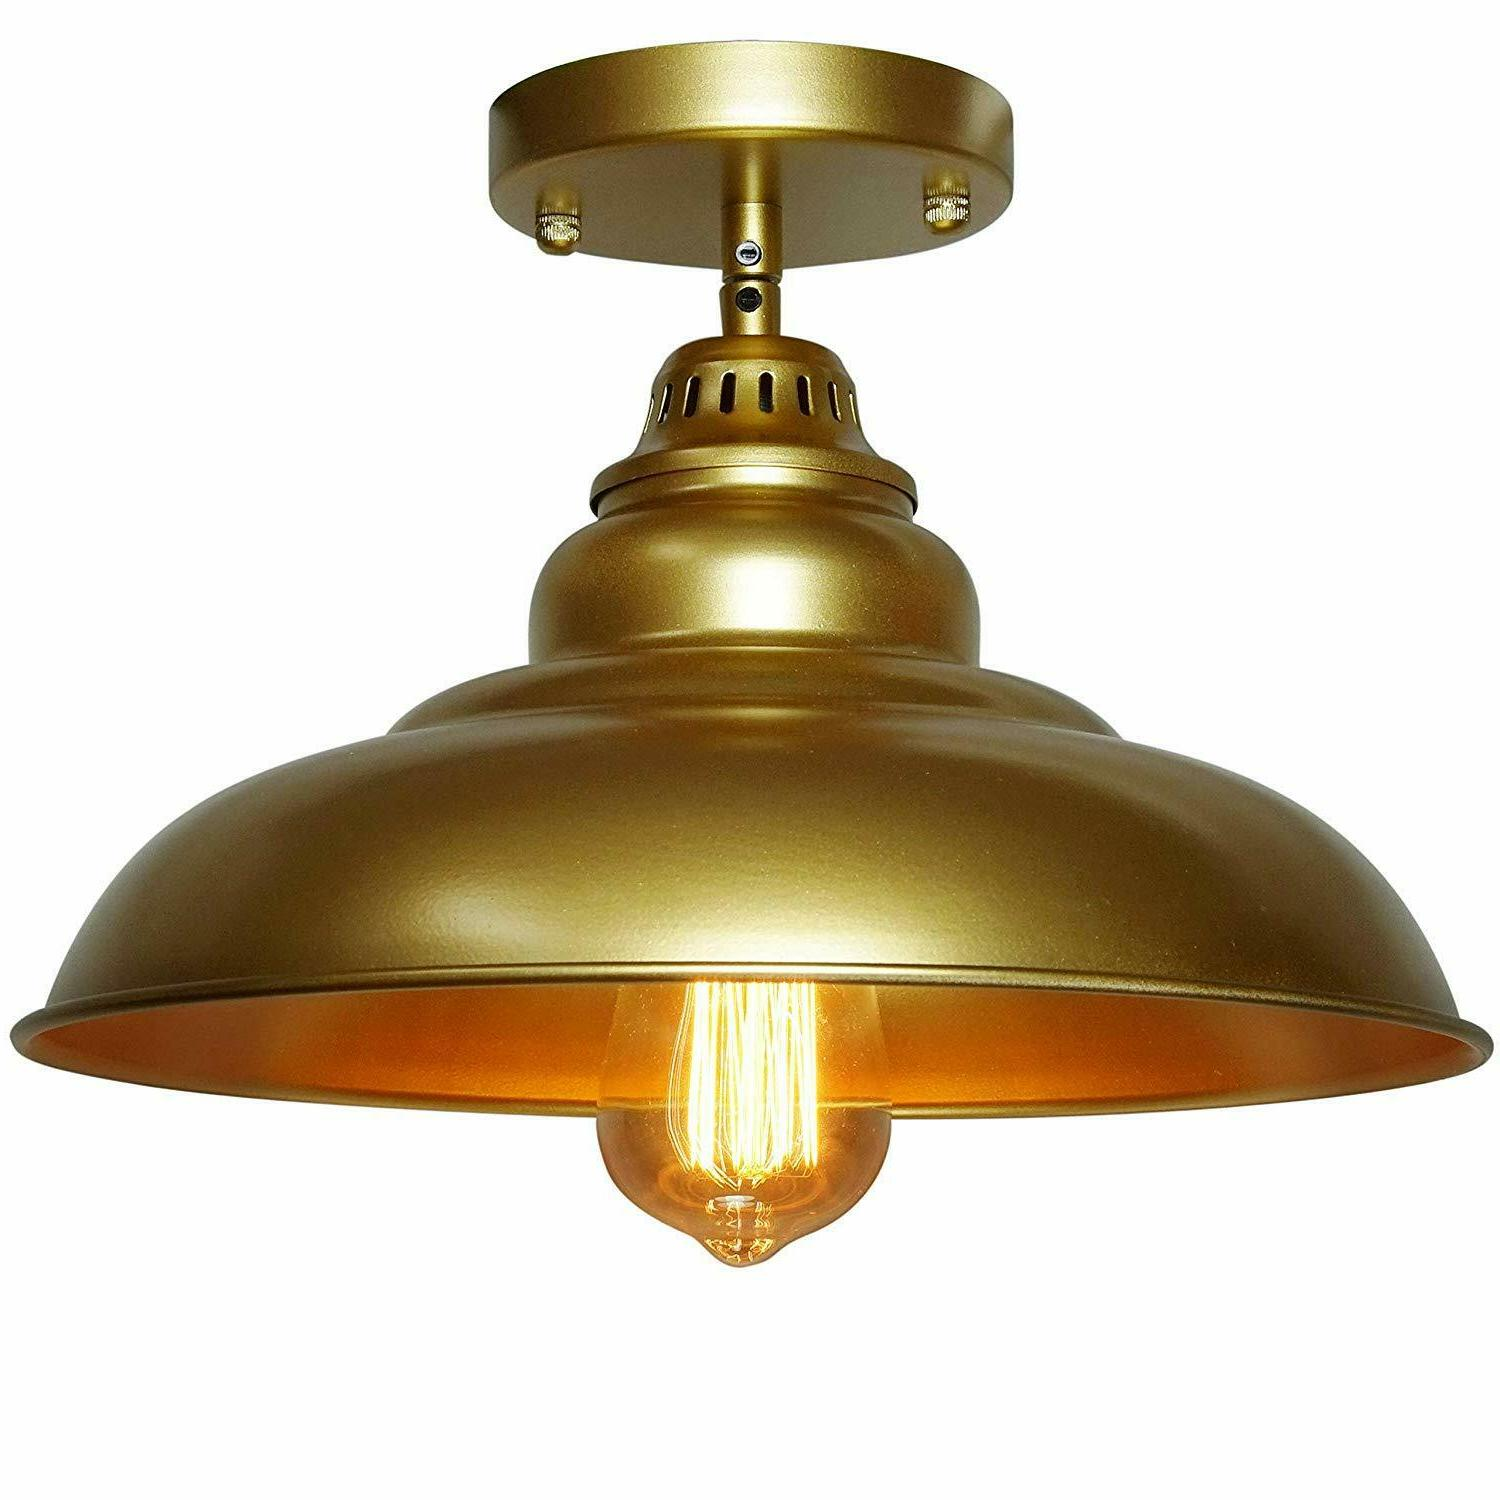 Barn Hanging Light Kitchen Table Dome